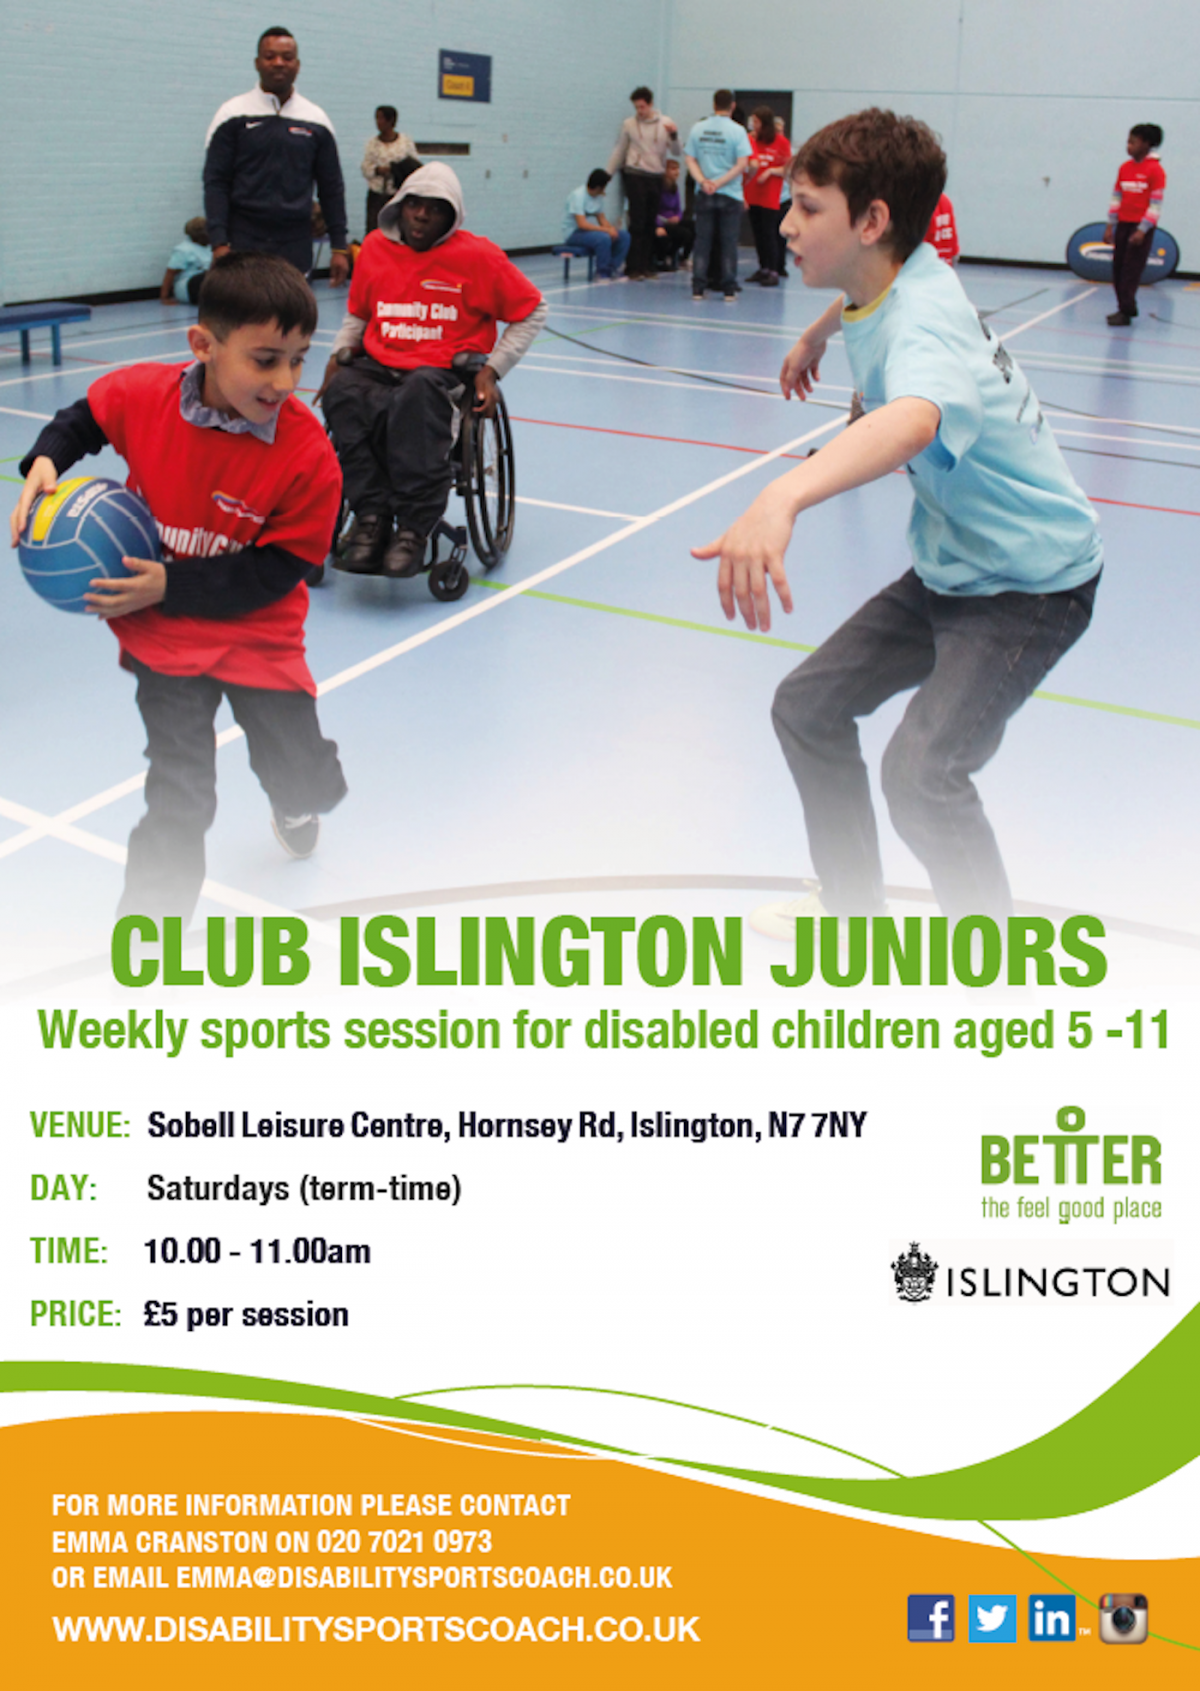 DSC Club Islington Juniors - weekly sports session for disabled children aged 5-11